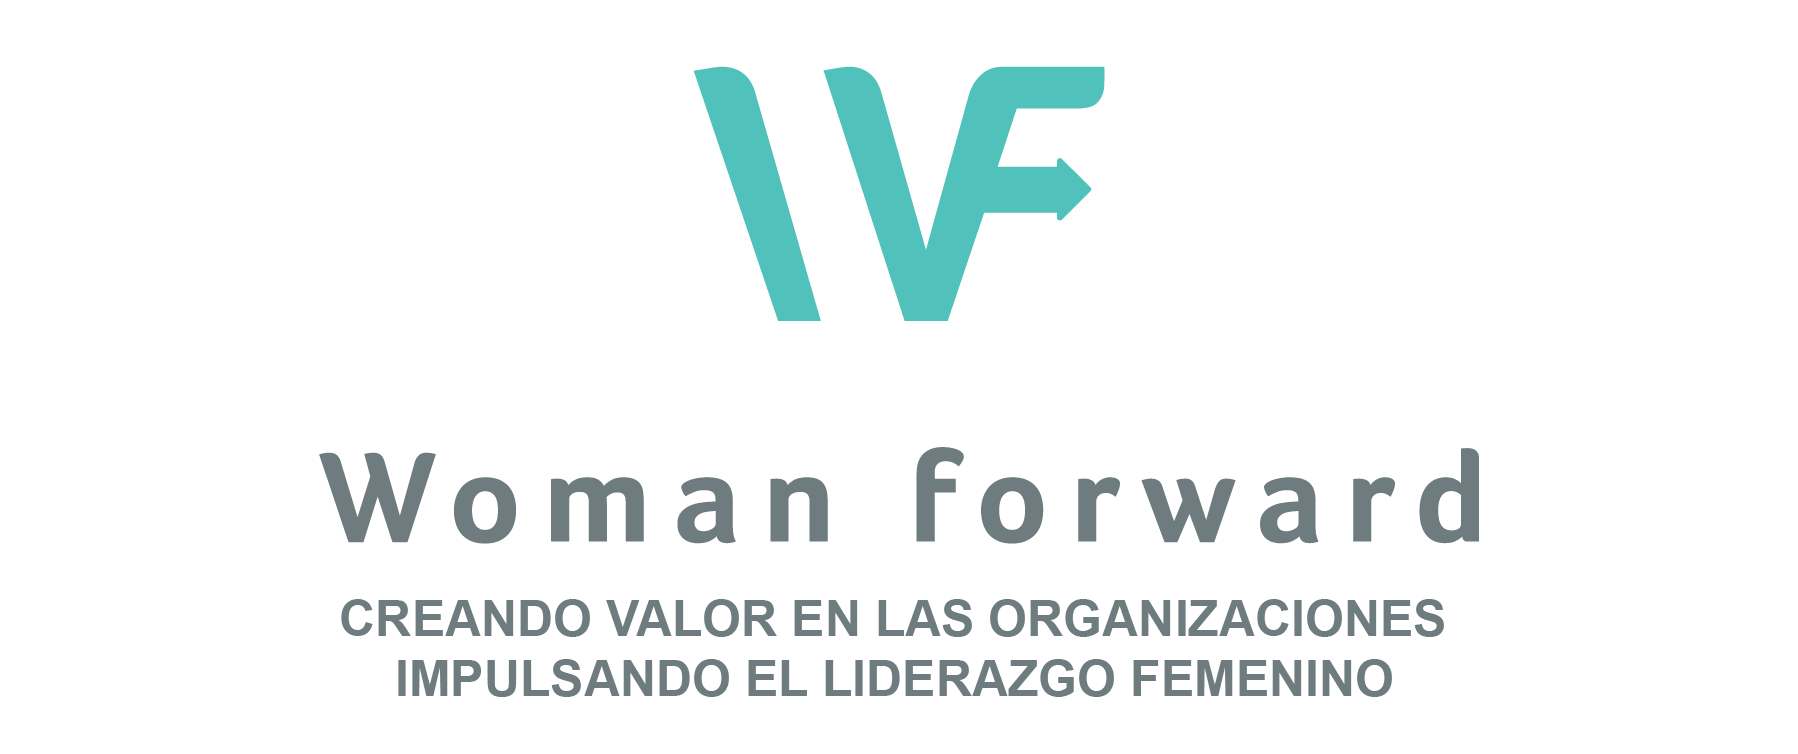 Womanforward